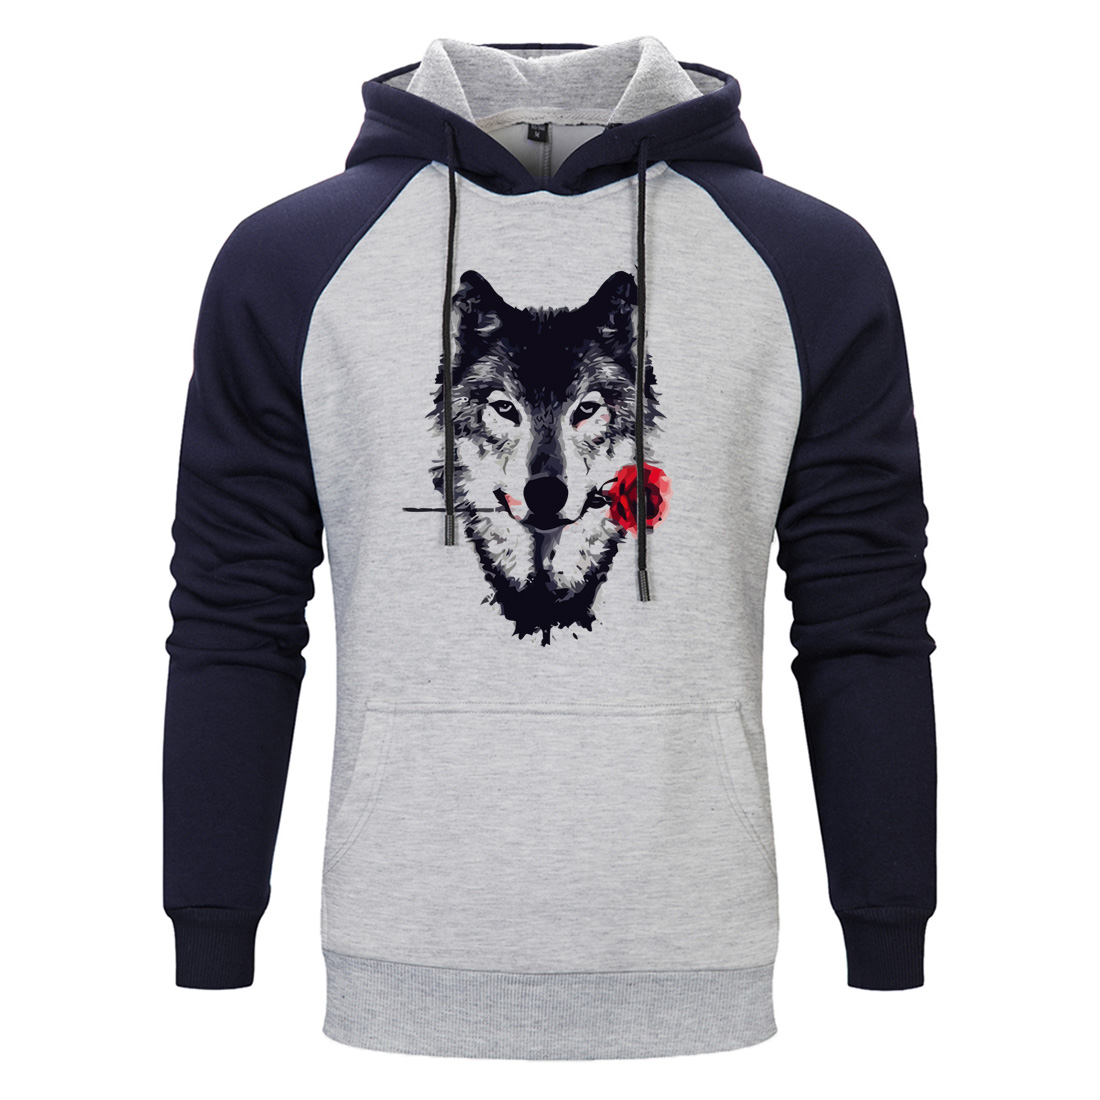 Wolf With Roses Hooded Sweatshirts Mens Autumn Winter Fleece Casual Tracksuits Hoody 2020 Sportswear Hooded Hip Hop Streetwear